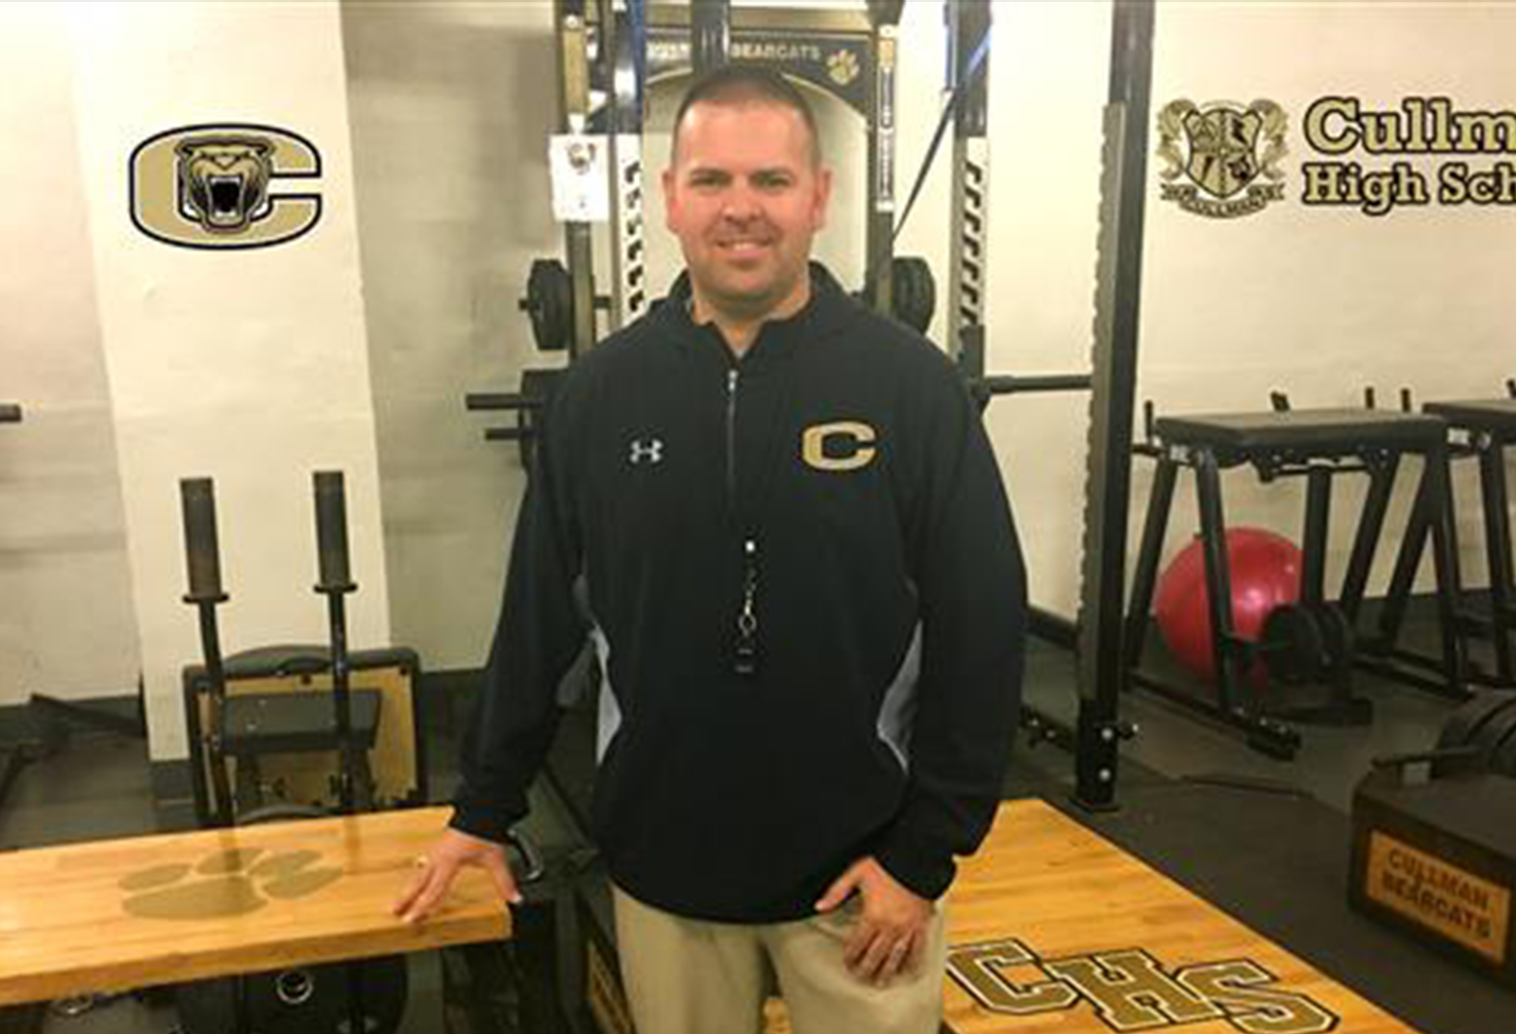 Plunkett steps down as Cullman head coach